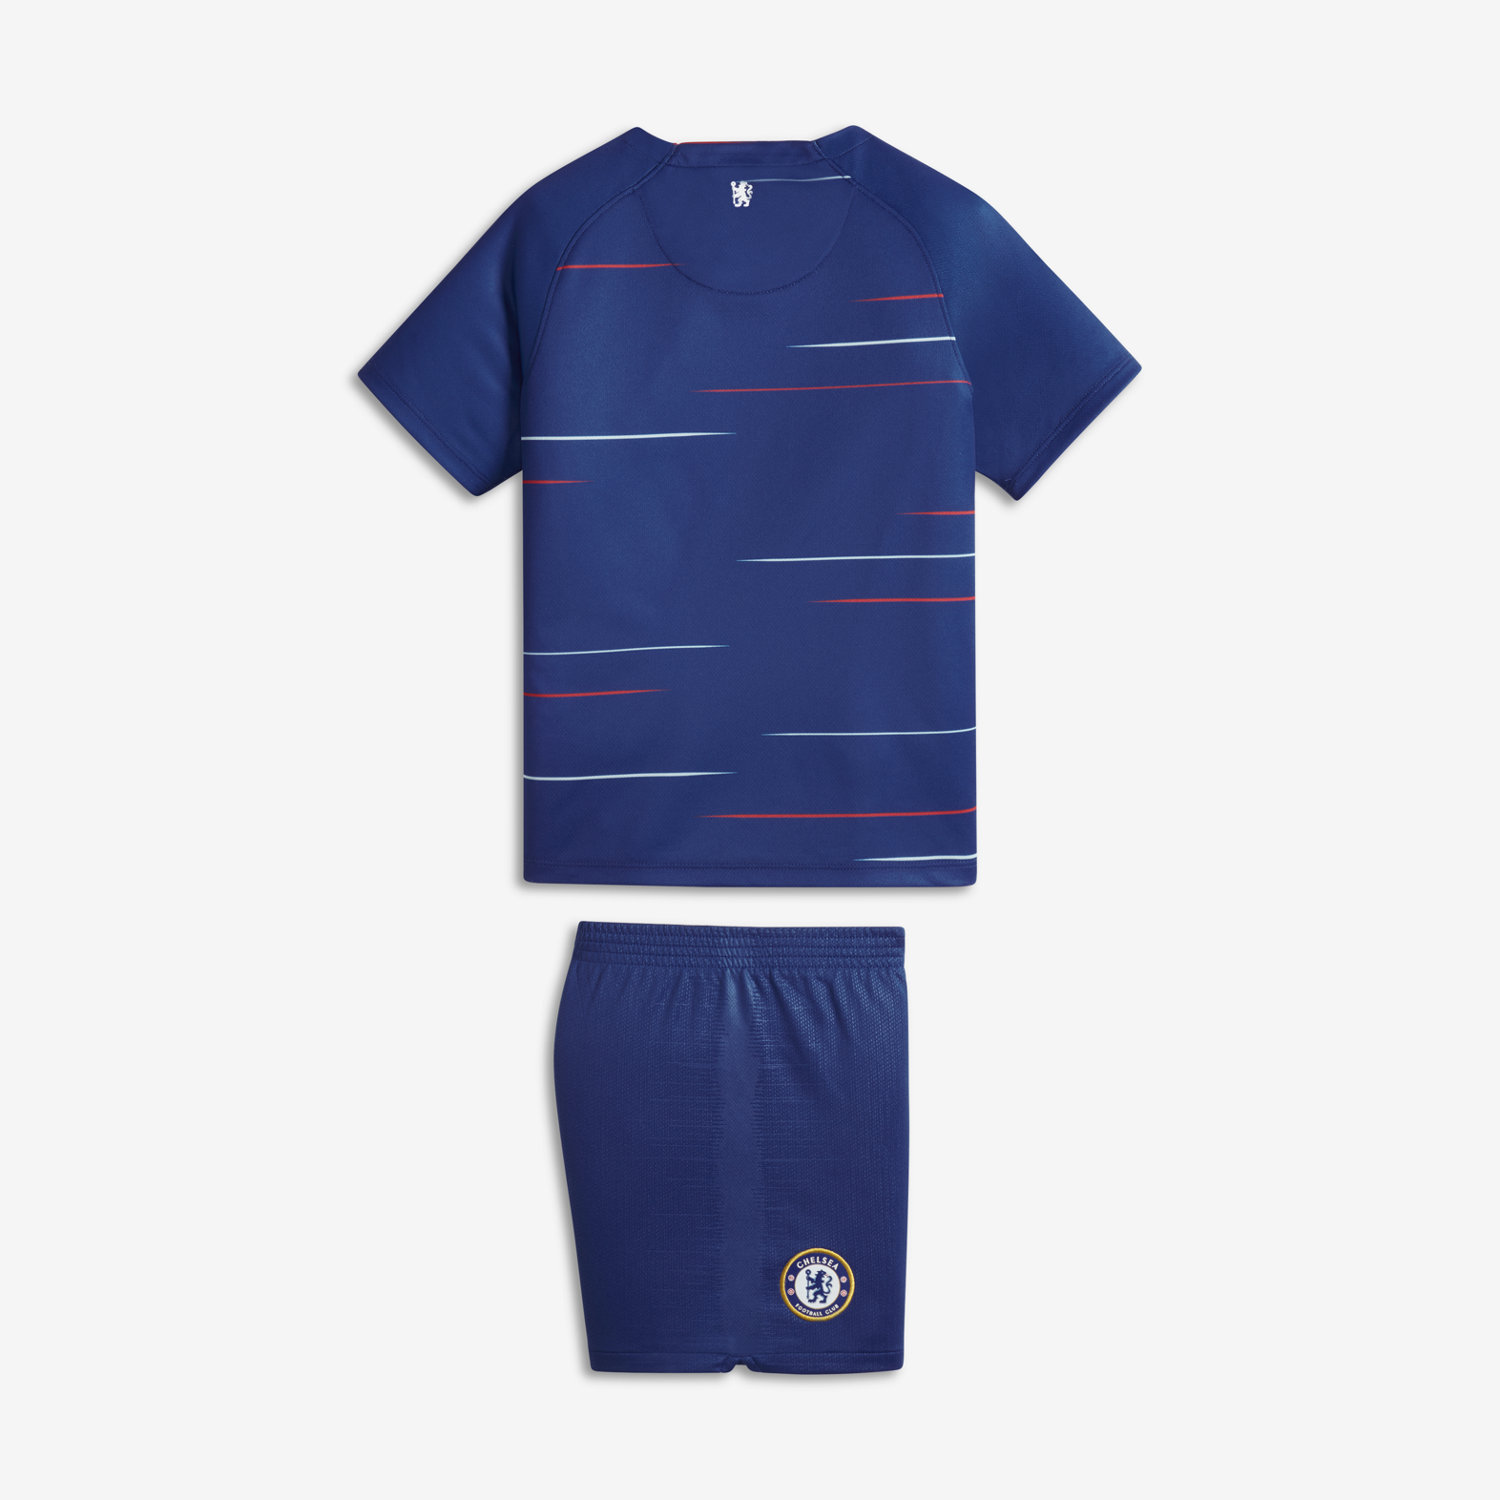 2018/19 Chelsea FC Stadium Home Younger Kids' Football Kit. Nike.com NL